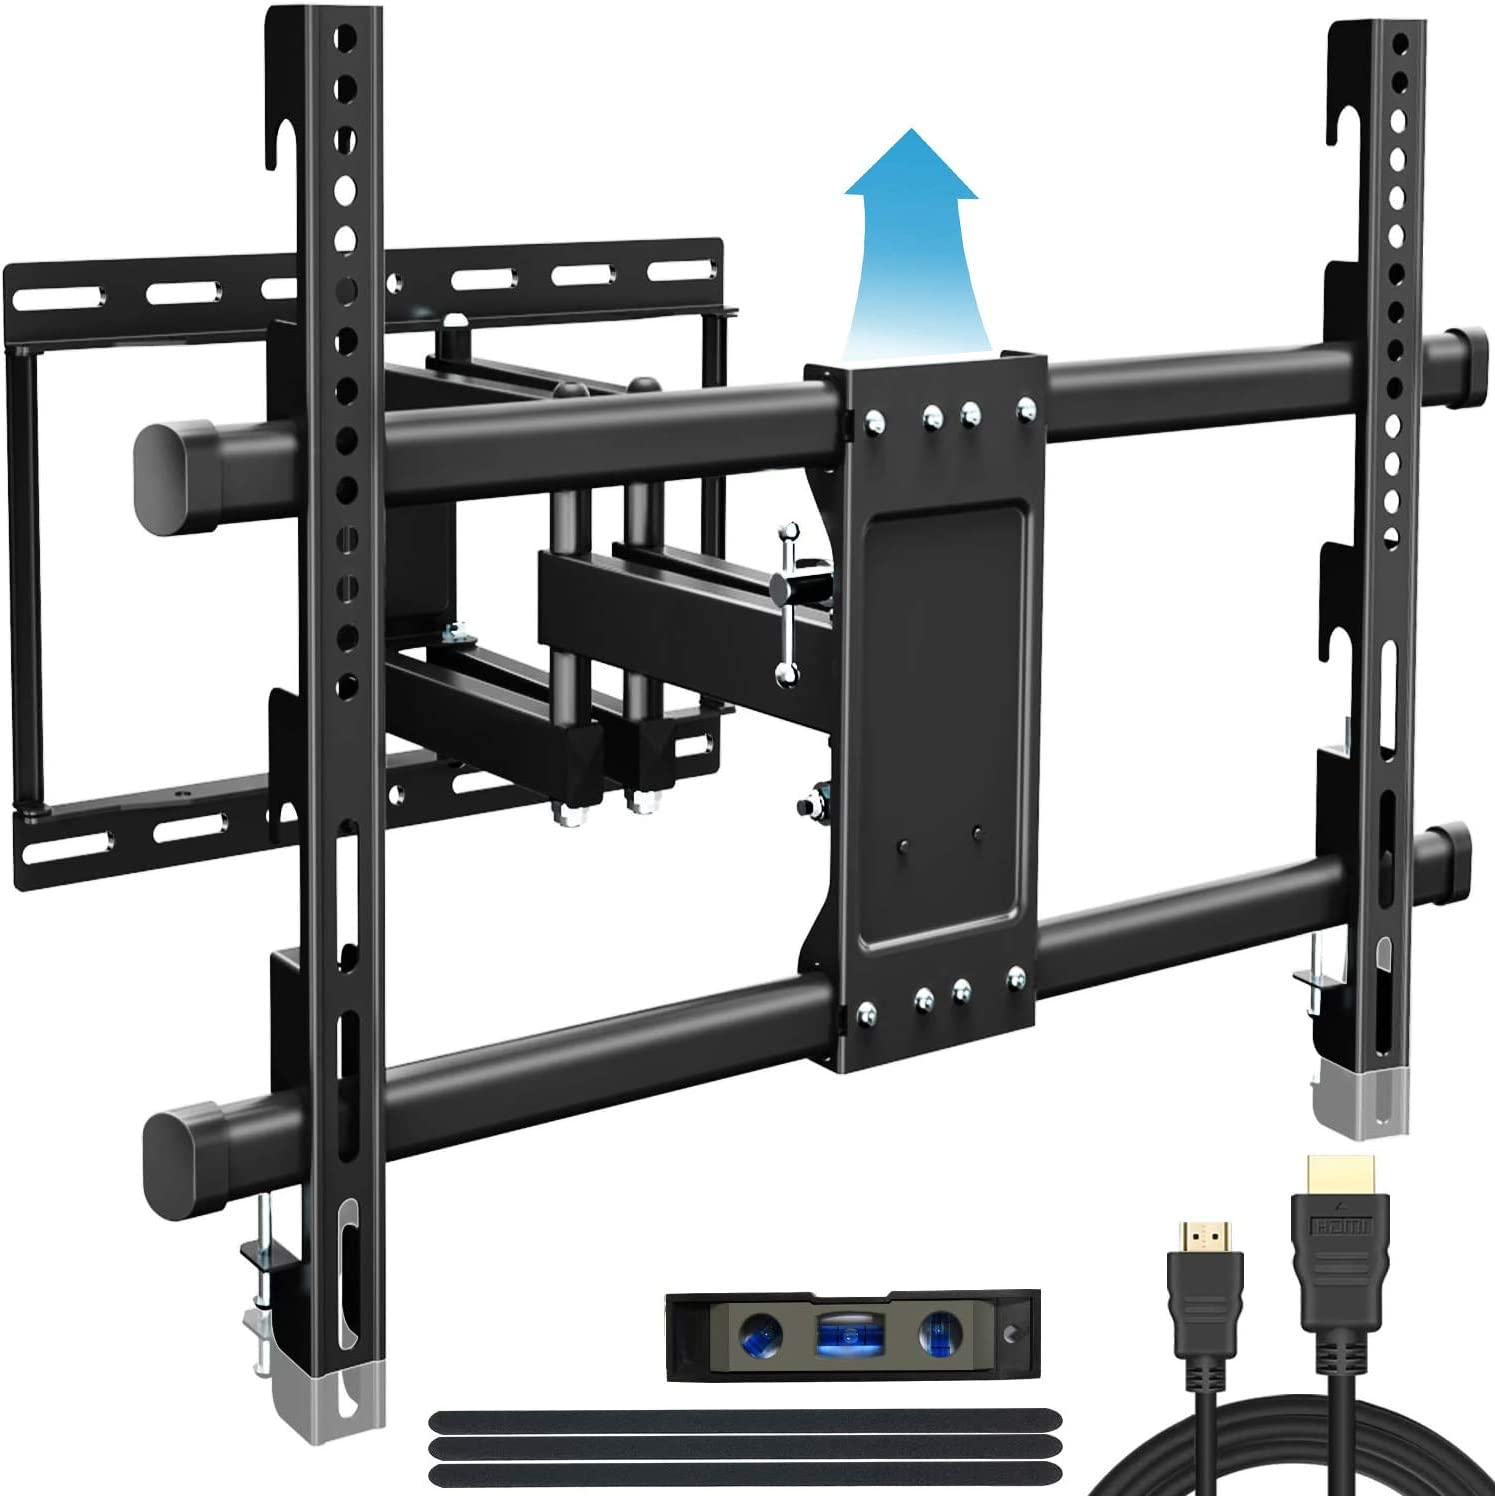 Full Motion TV Wall Mount for Most 32-83 inch Flat Screen Curved Screen 4K TVs, TV Mount Bracket – Articulating Arms with Smooth Extension, Swivel, Tilt, Height Adjustment Design and Fits 16 Studs